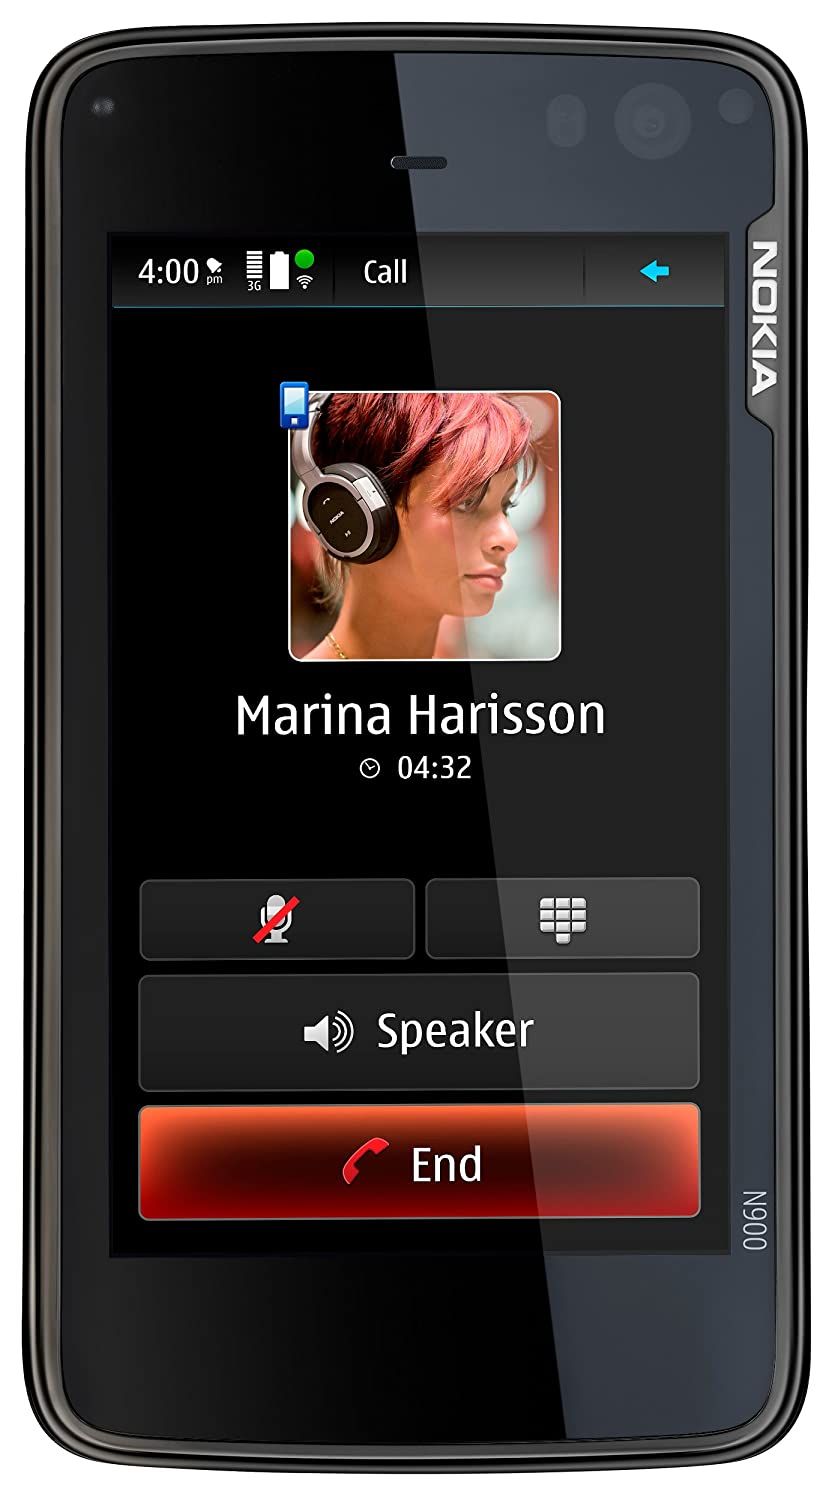 Nokia N900 Unlocked Phone Mobile Computer With 35 Inch N97 Mini Service Manual Touchscreen Qwerty 5 Mp Camera Maemo Browser 32 Gb Us Version Full